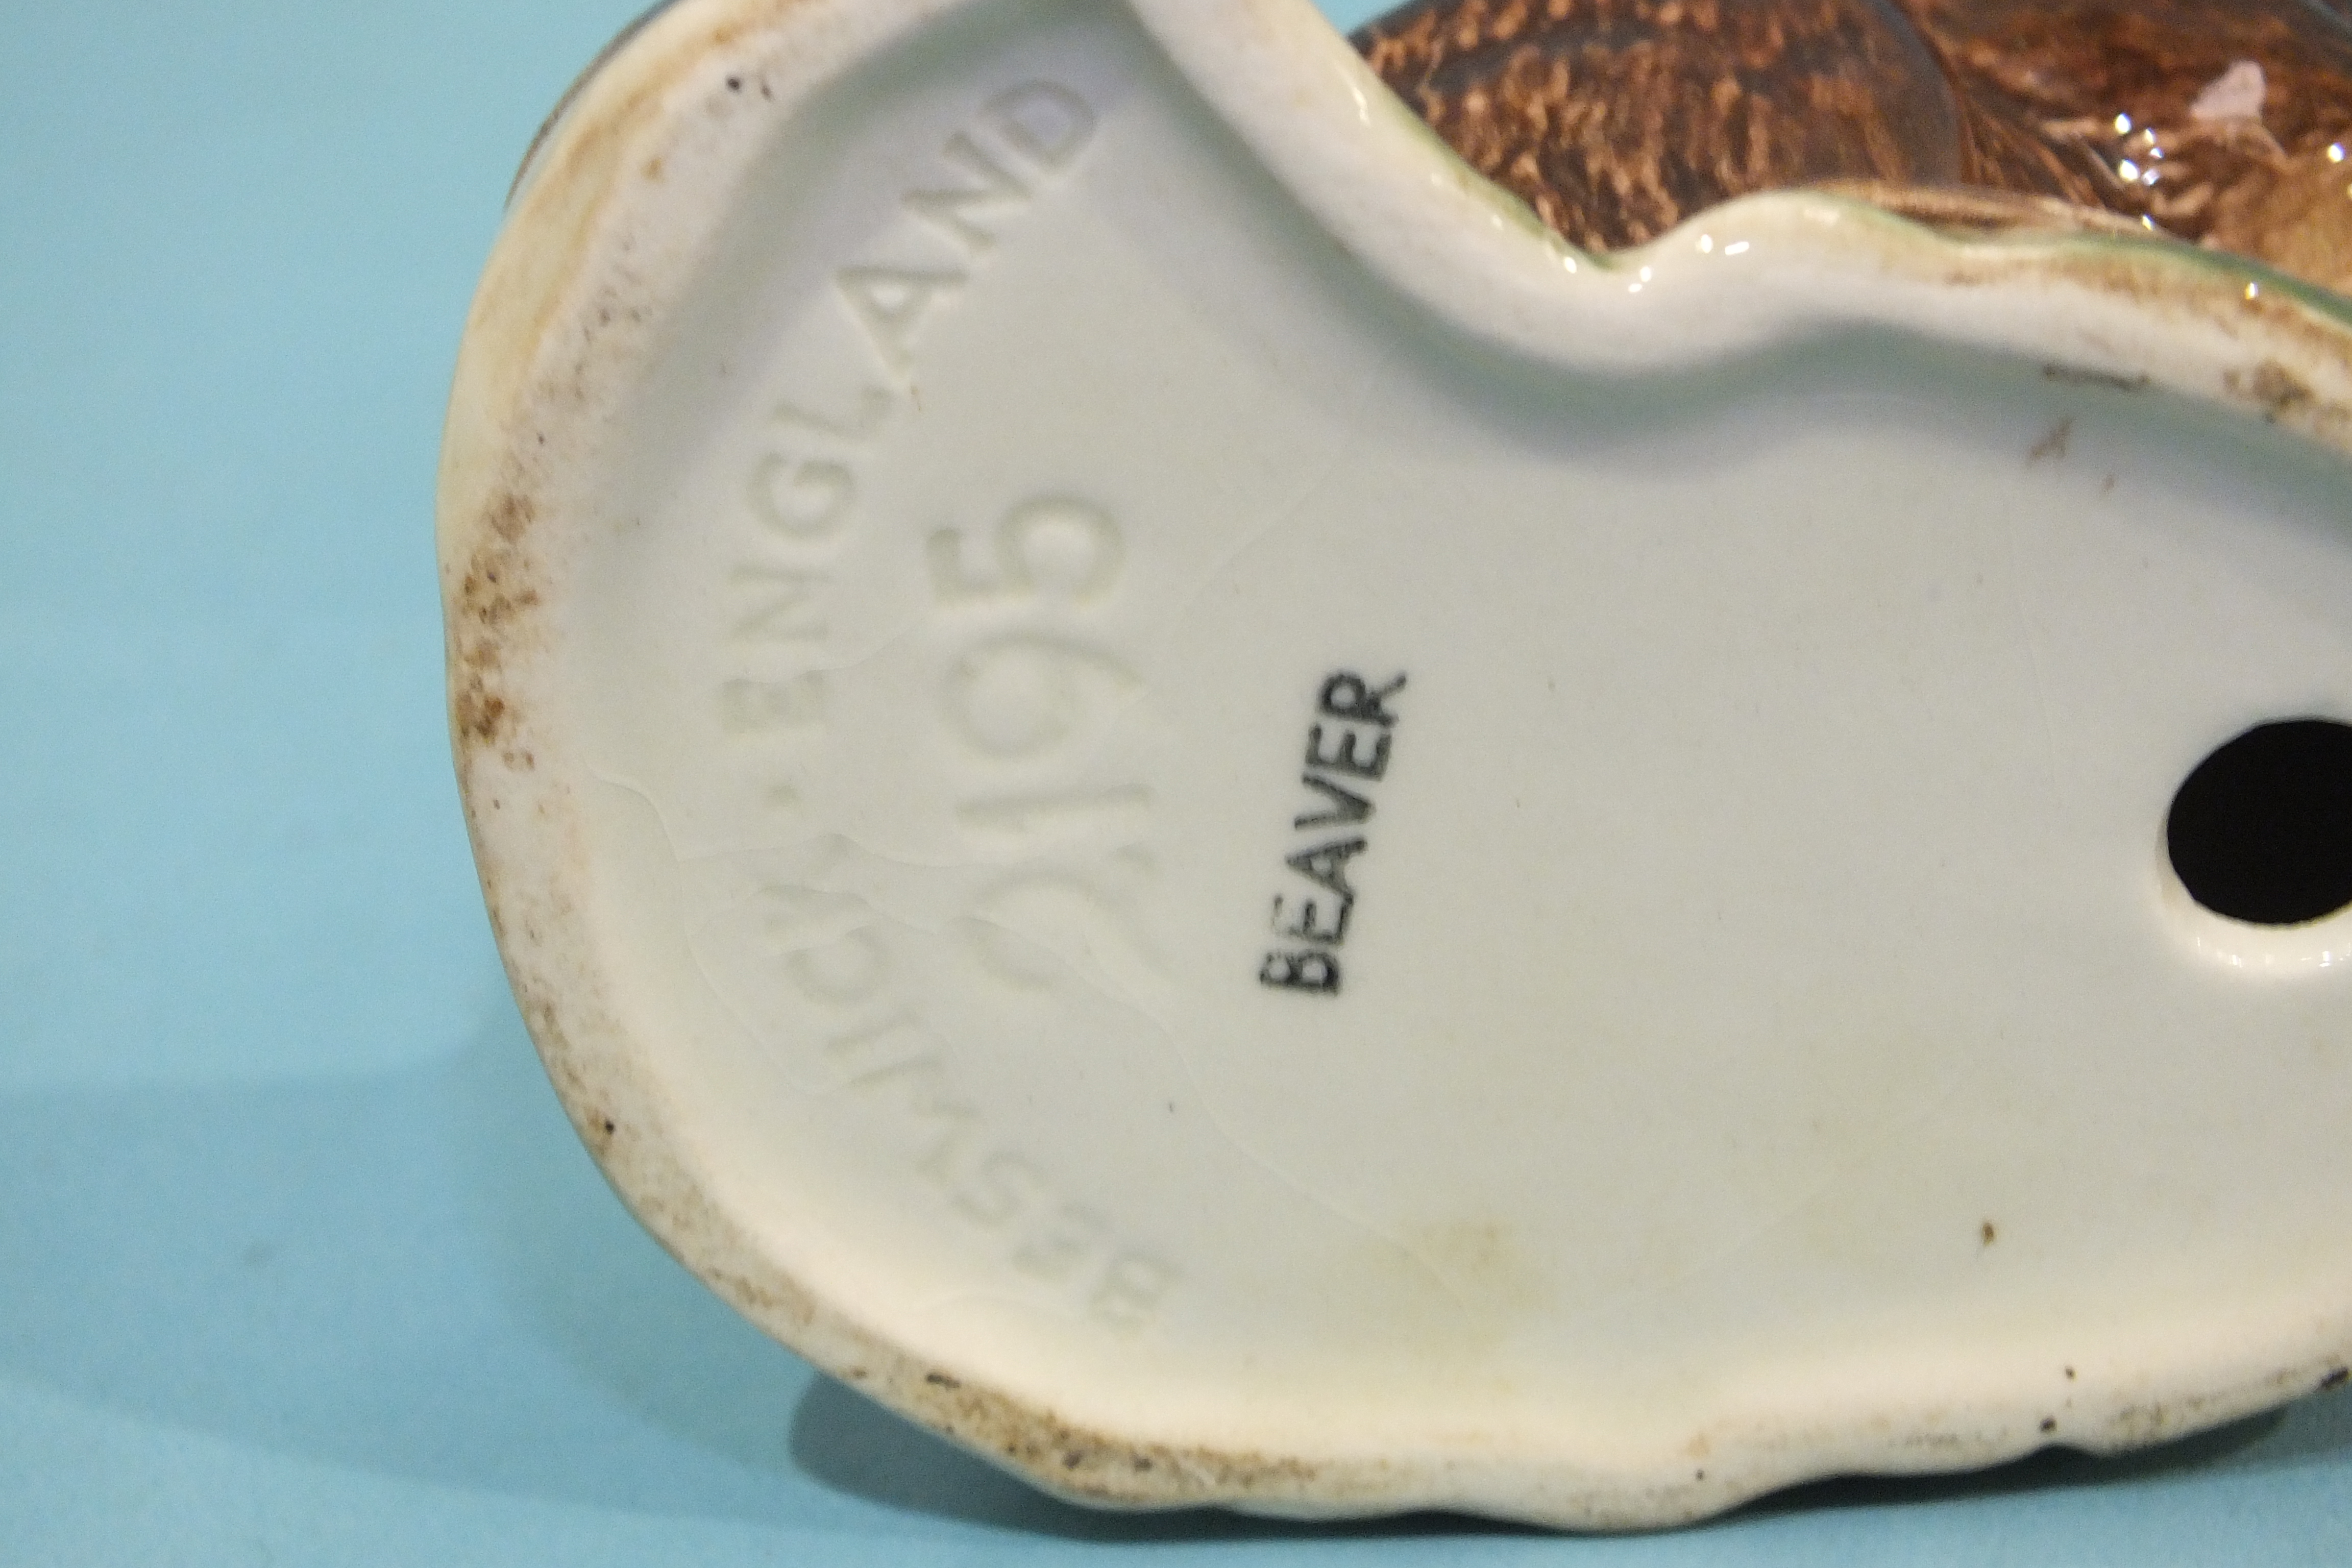 Lot 129 - A Beswick model of a Thrush 2308, Beaver 2195, Kingfisher 2371, Barn Owl 1046 and a Nao model of a